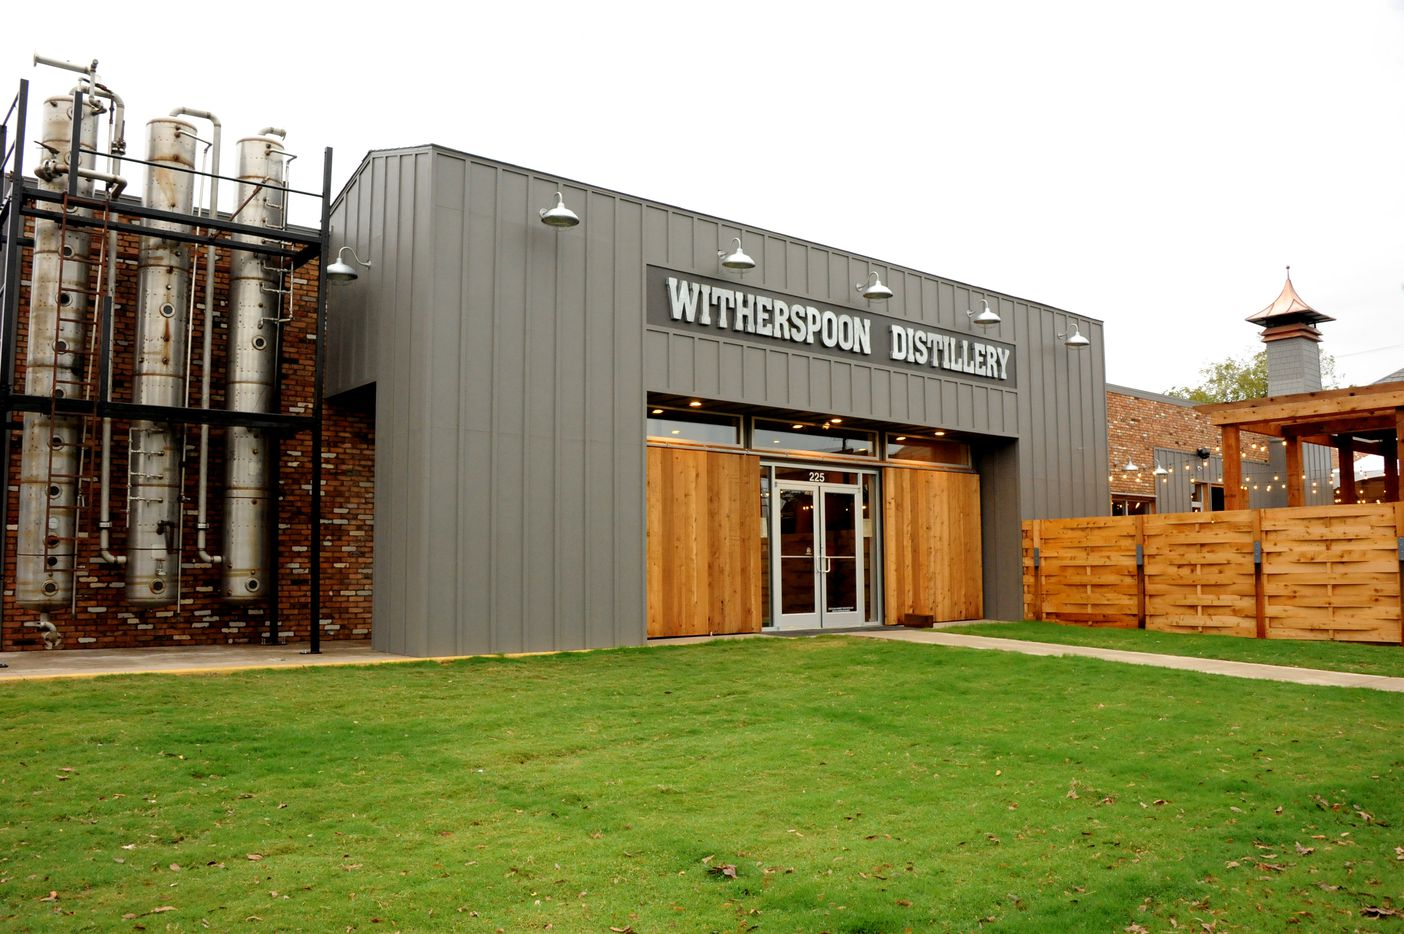 Witherspoon Distillery is now open and is located in Lewisville, TX on October 24, 2015.